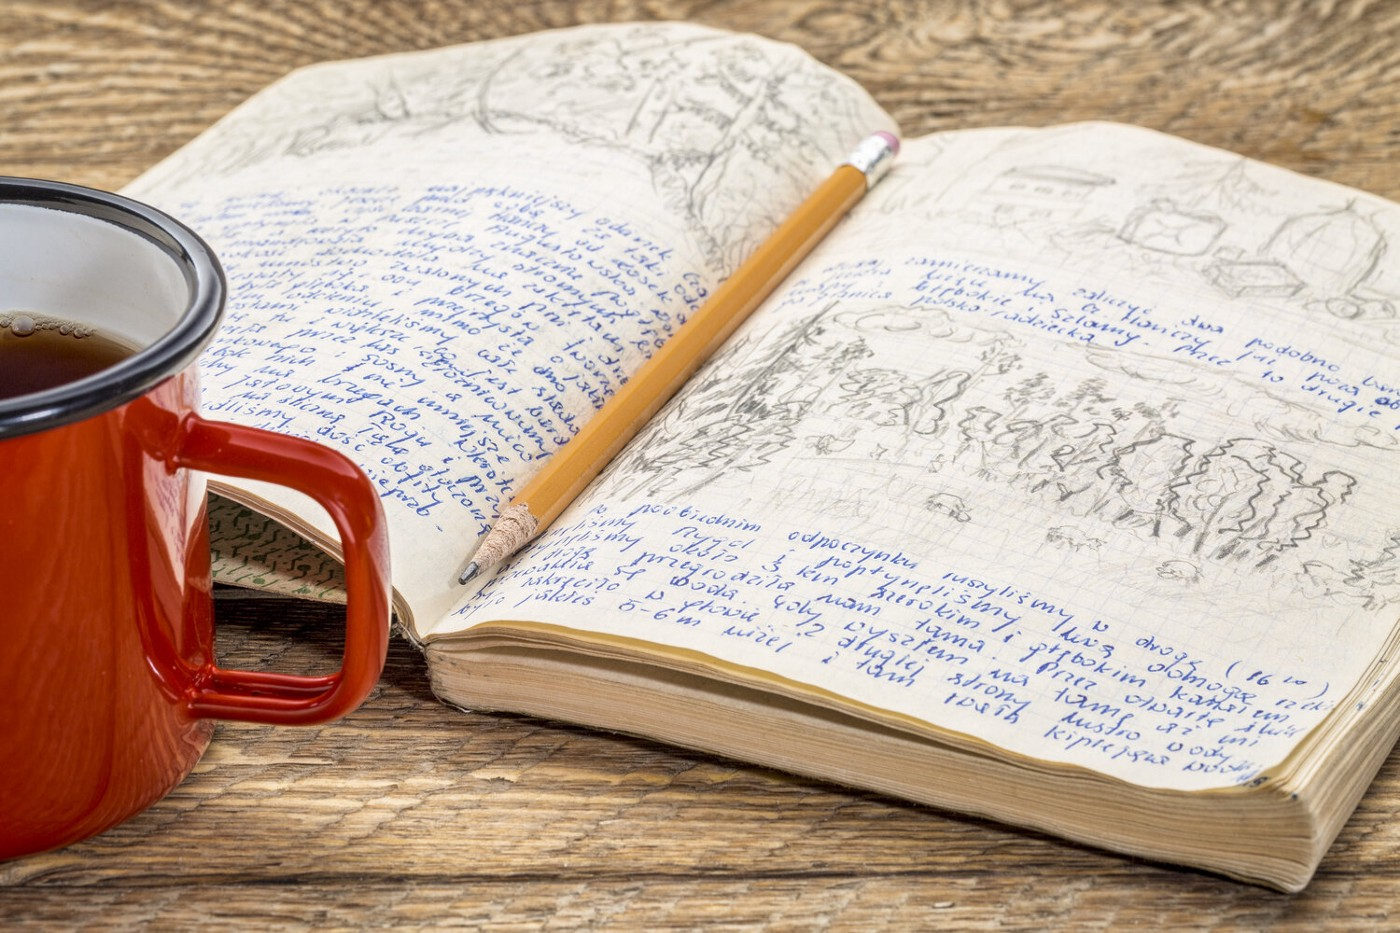 image of a journal with writing